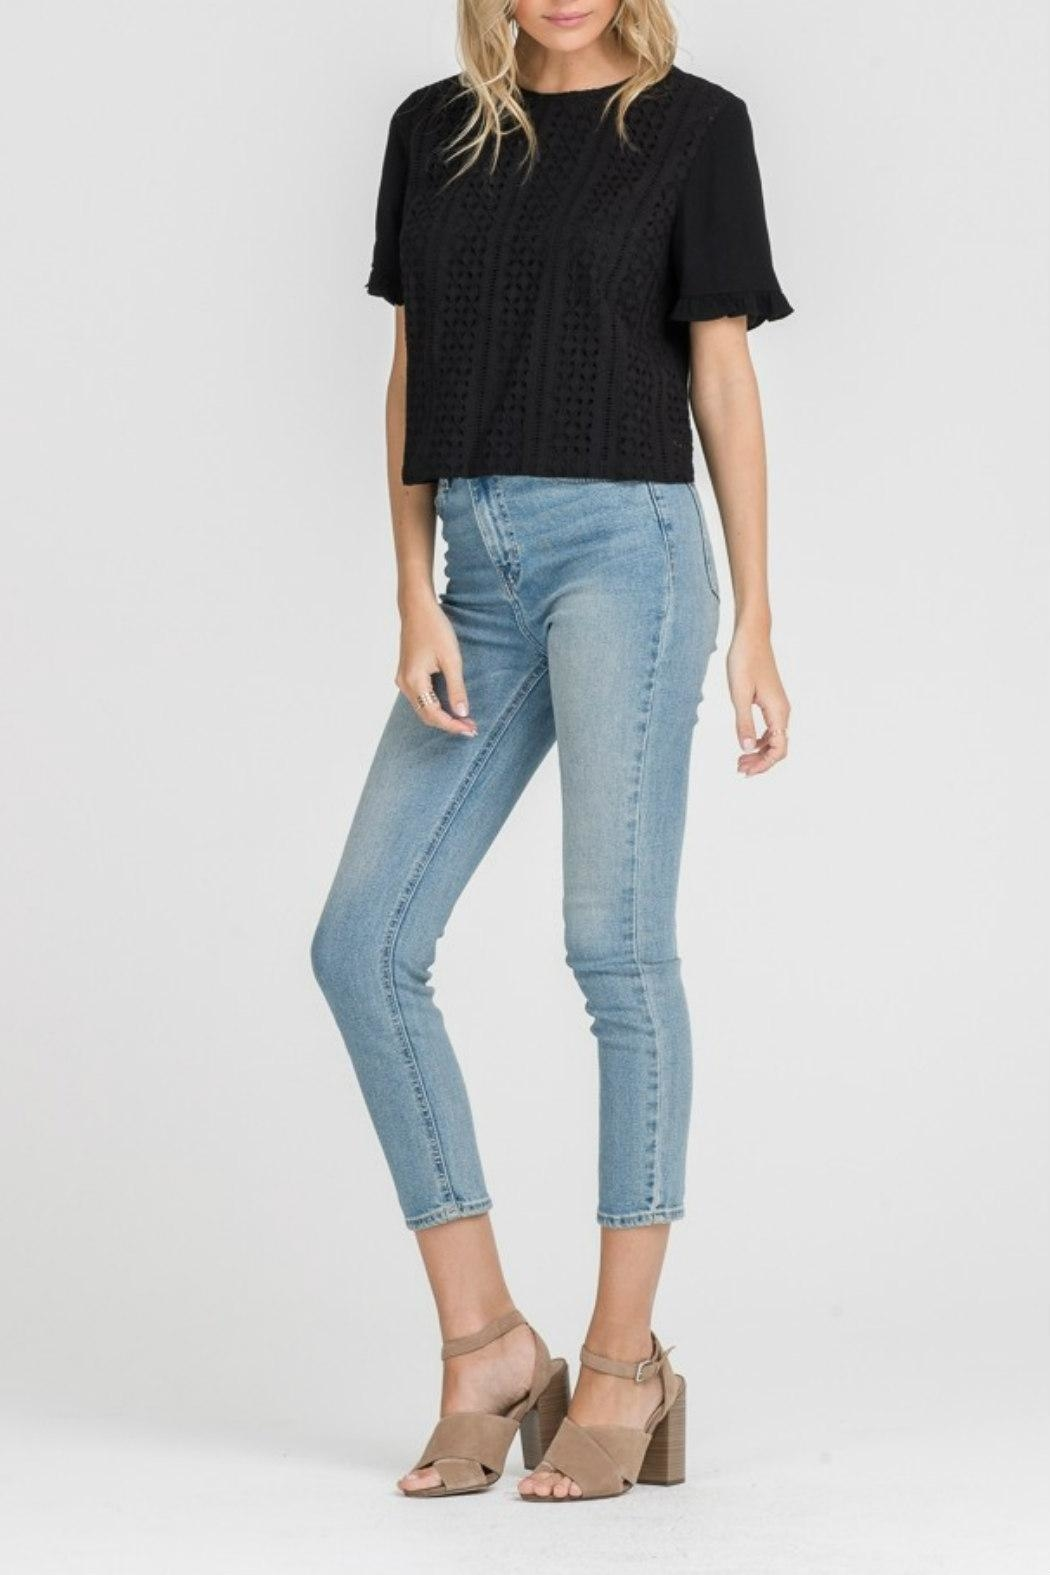 Lush Clothing  Eyelet Ruffle-Sleeve Top - Side Cropped Image